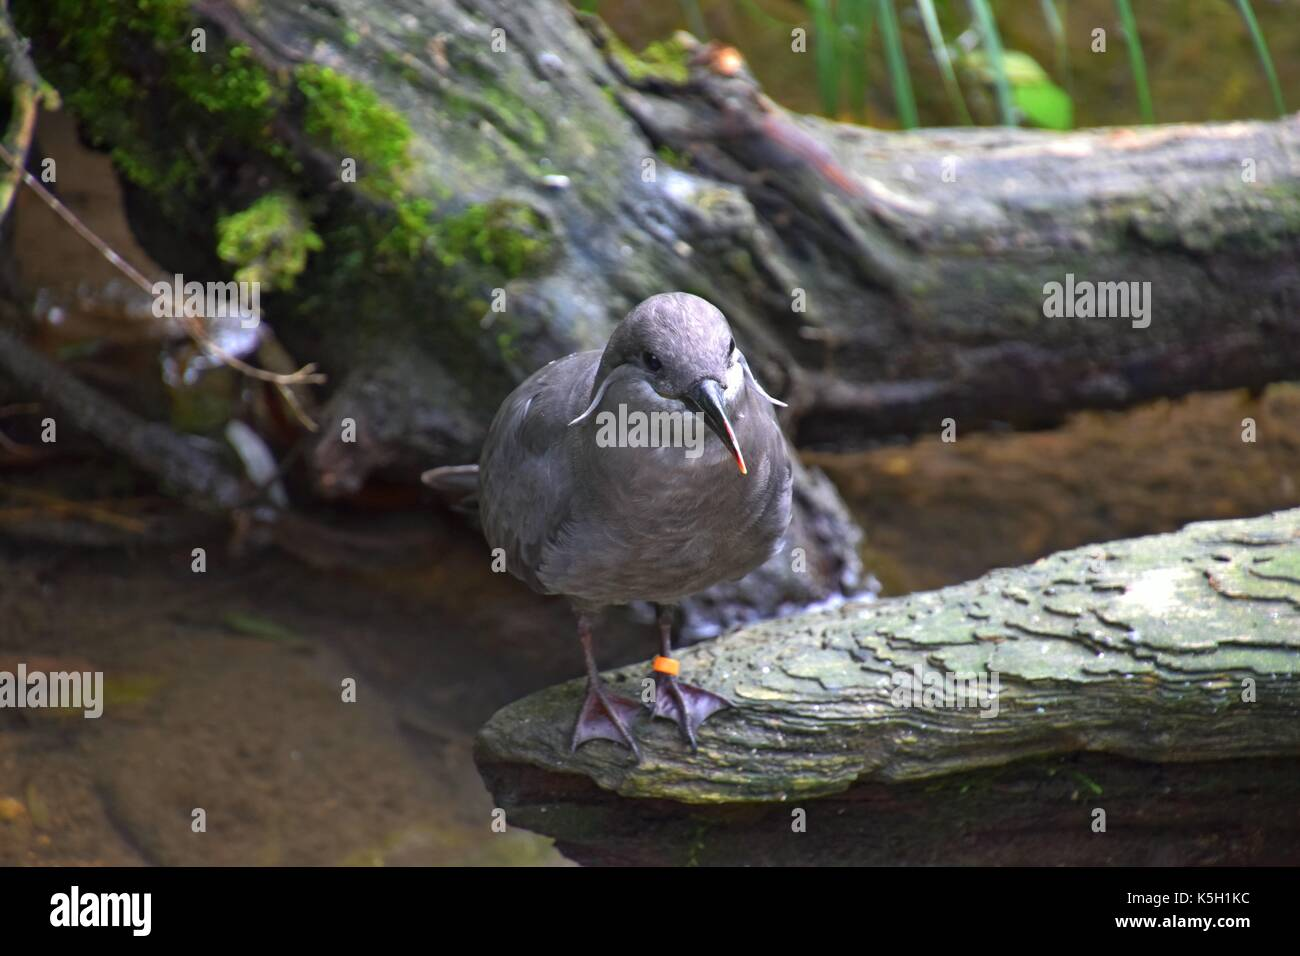 female of a larosterna inca at a stream, Larosterna Standing on a tree, Inca tern Stock Photo